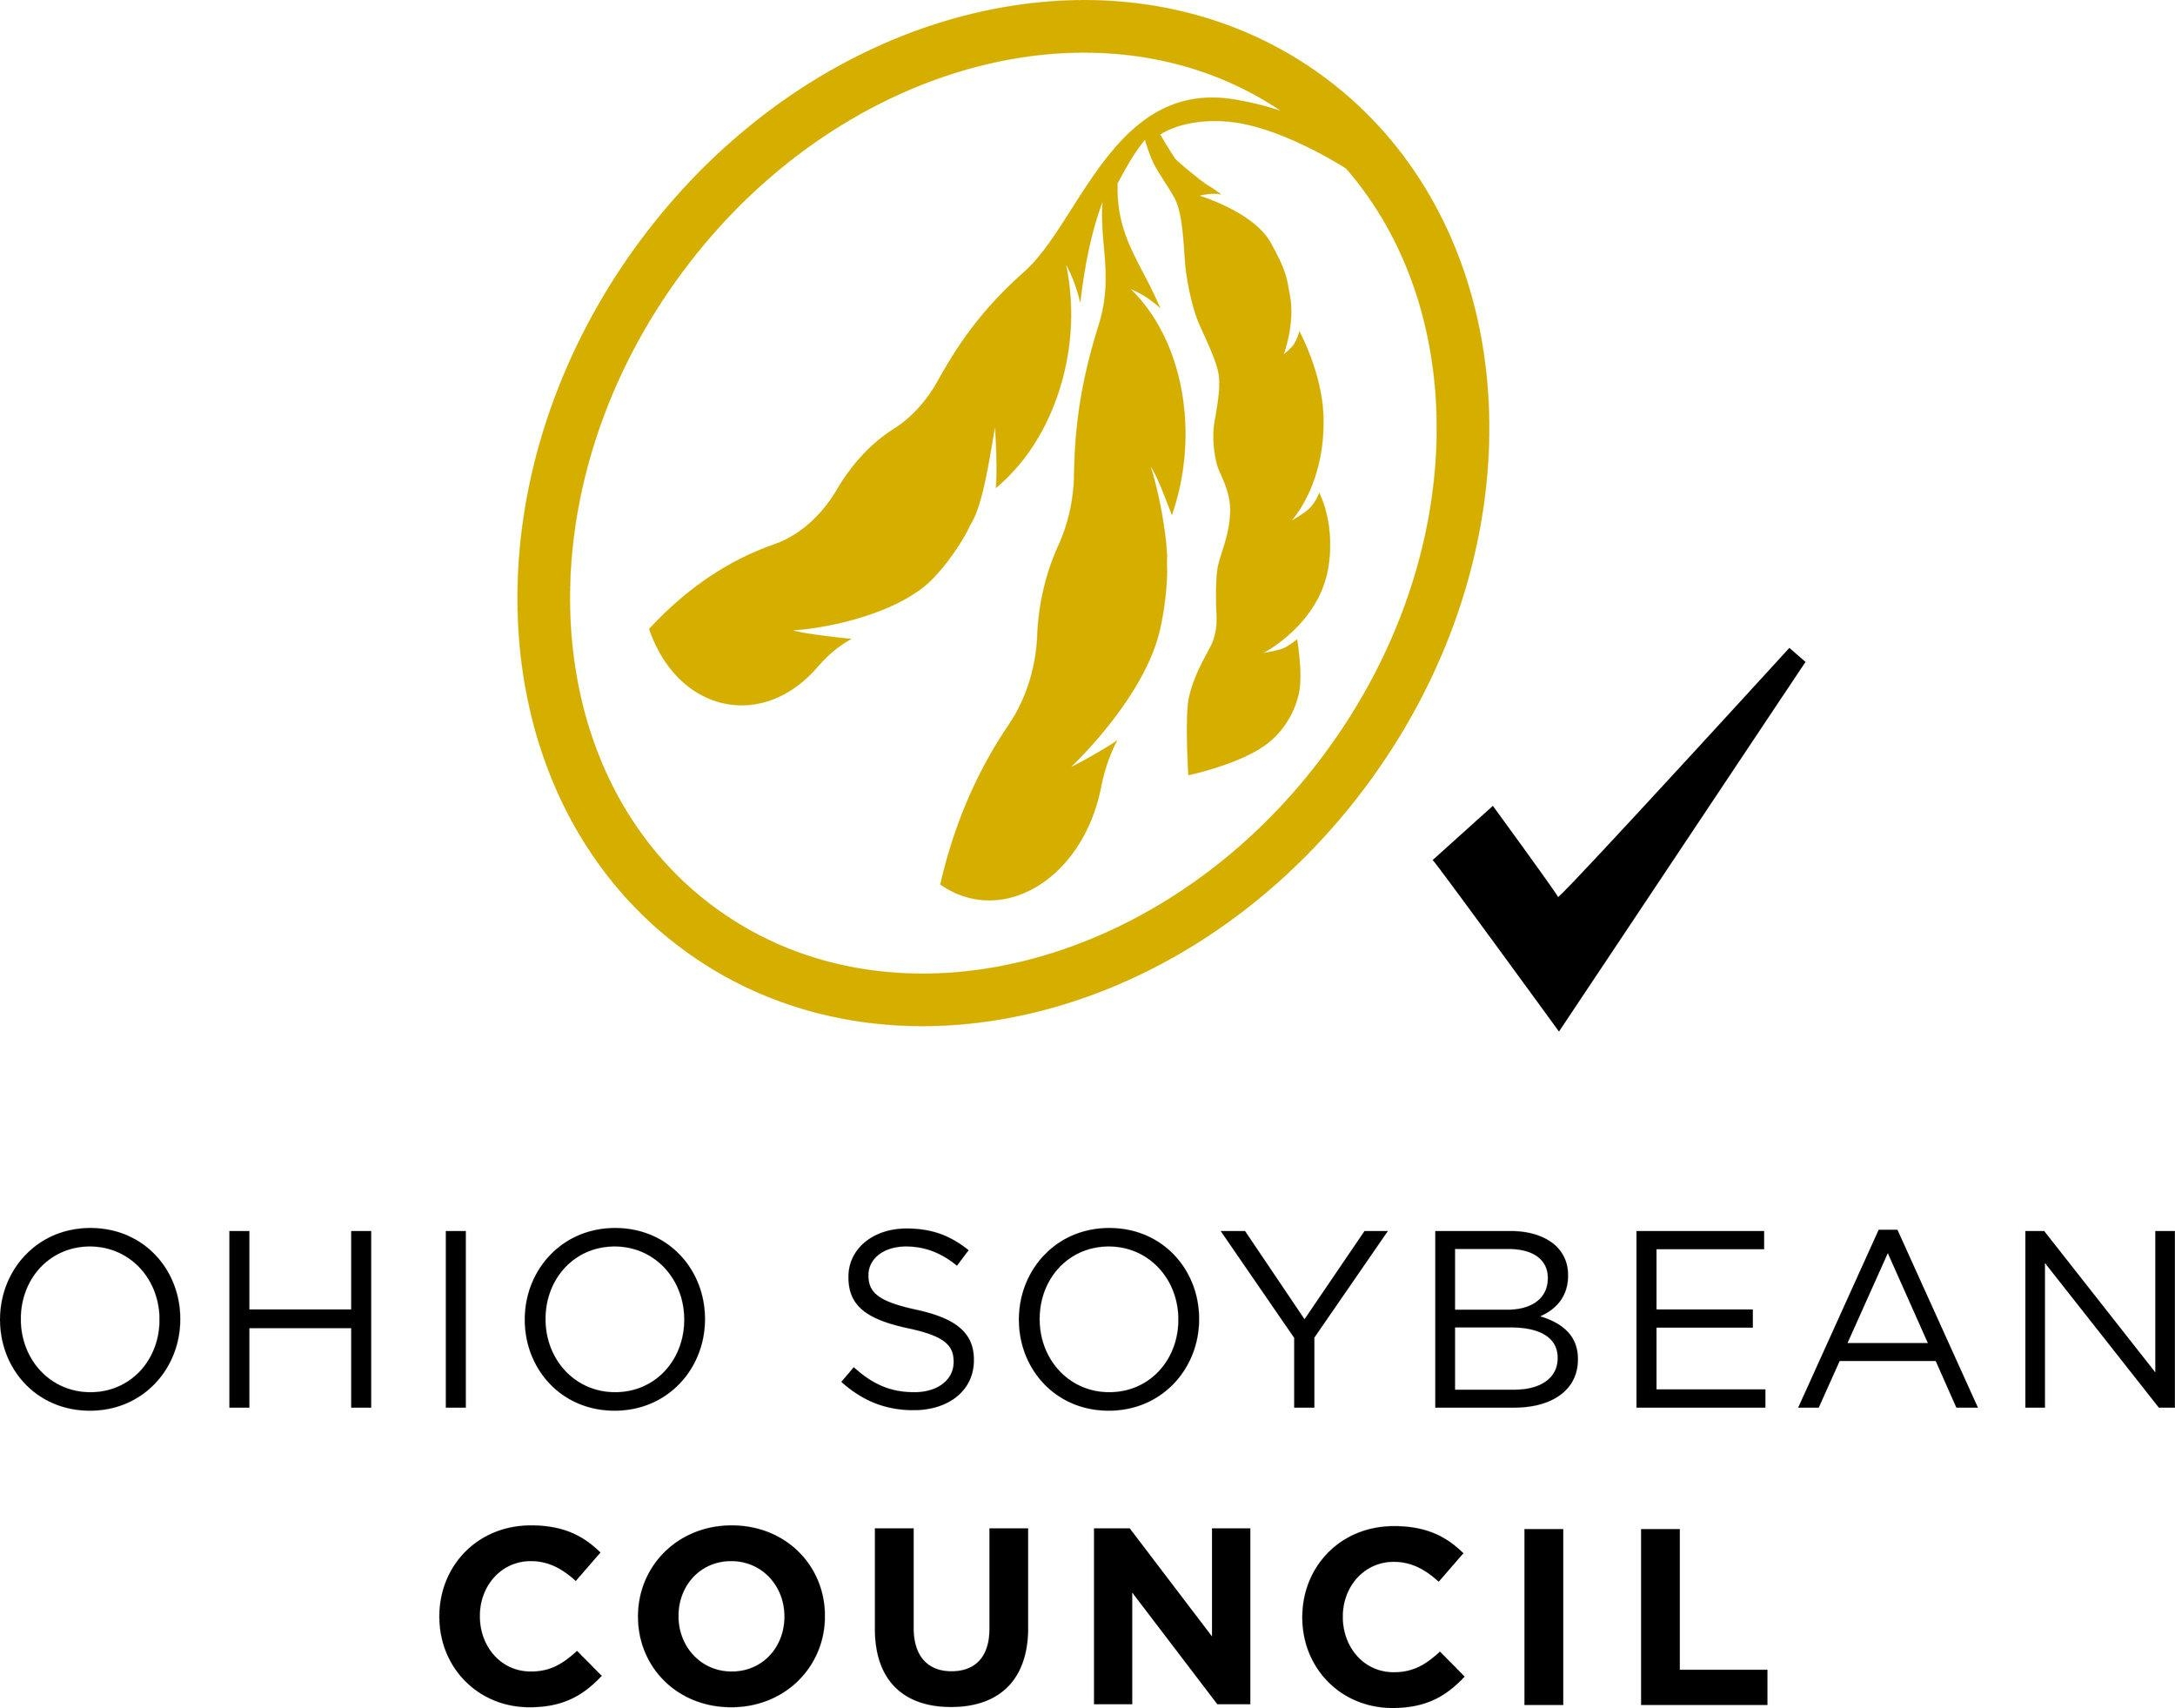 OHSOY Council Logo_Stacked_CMYK.JPG